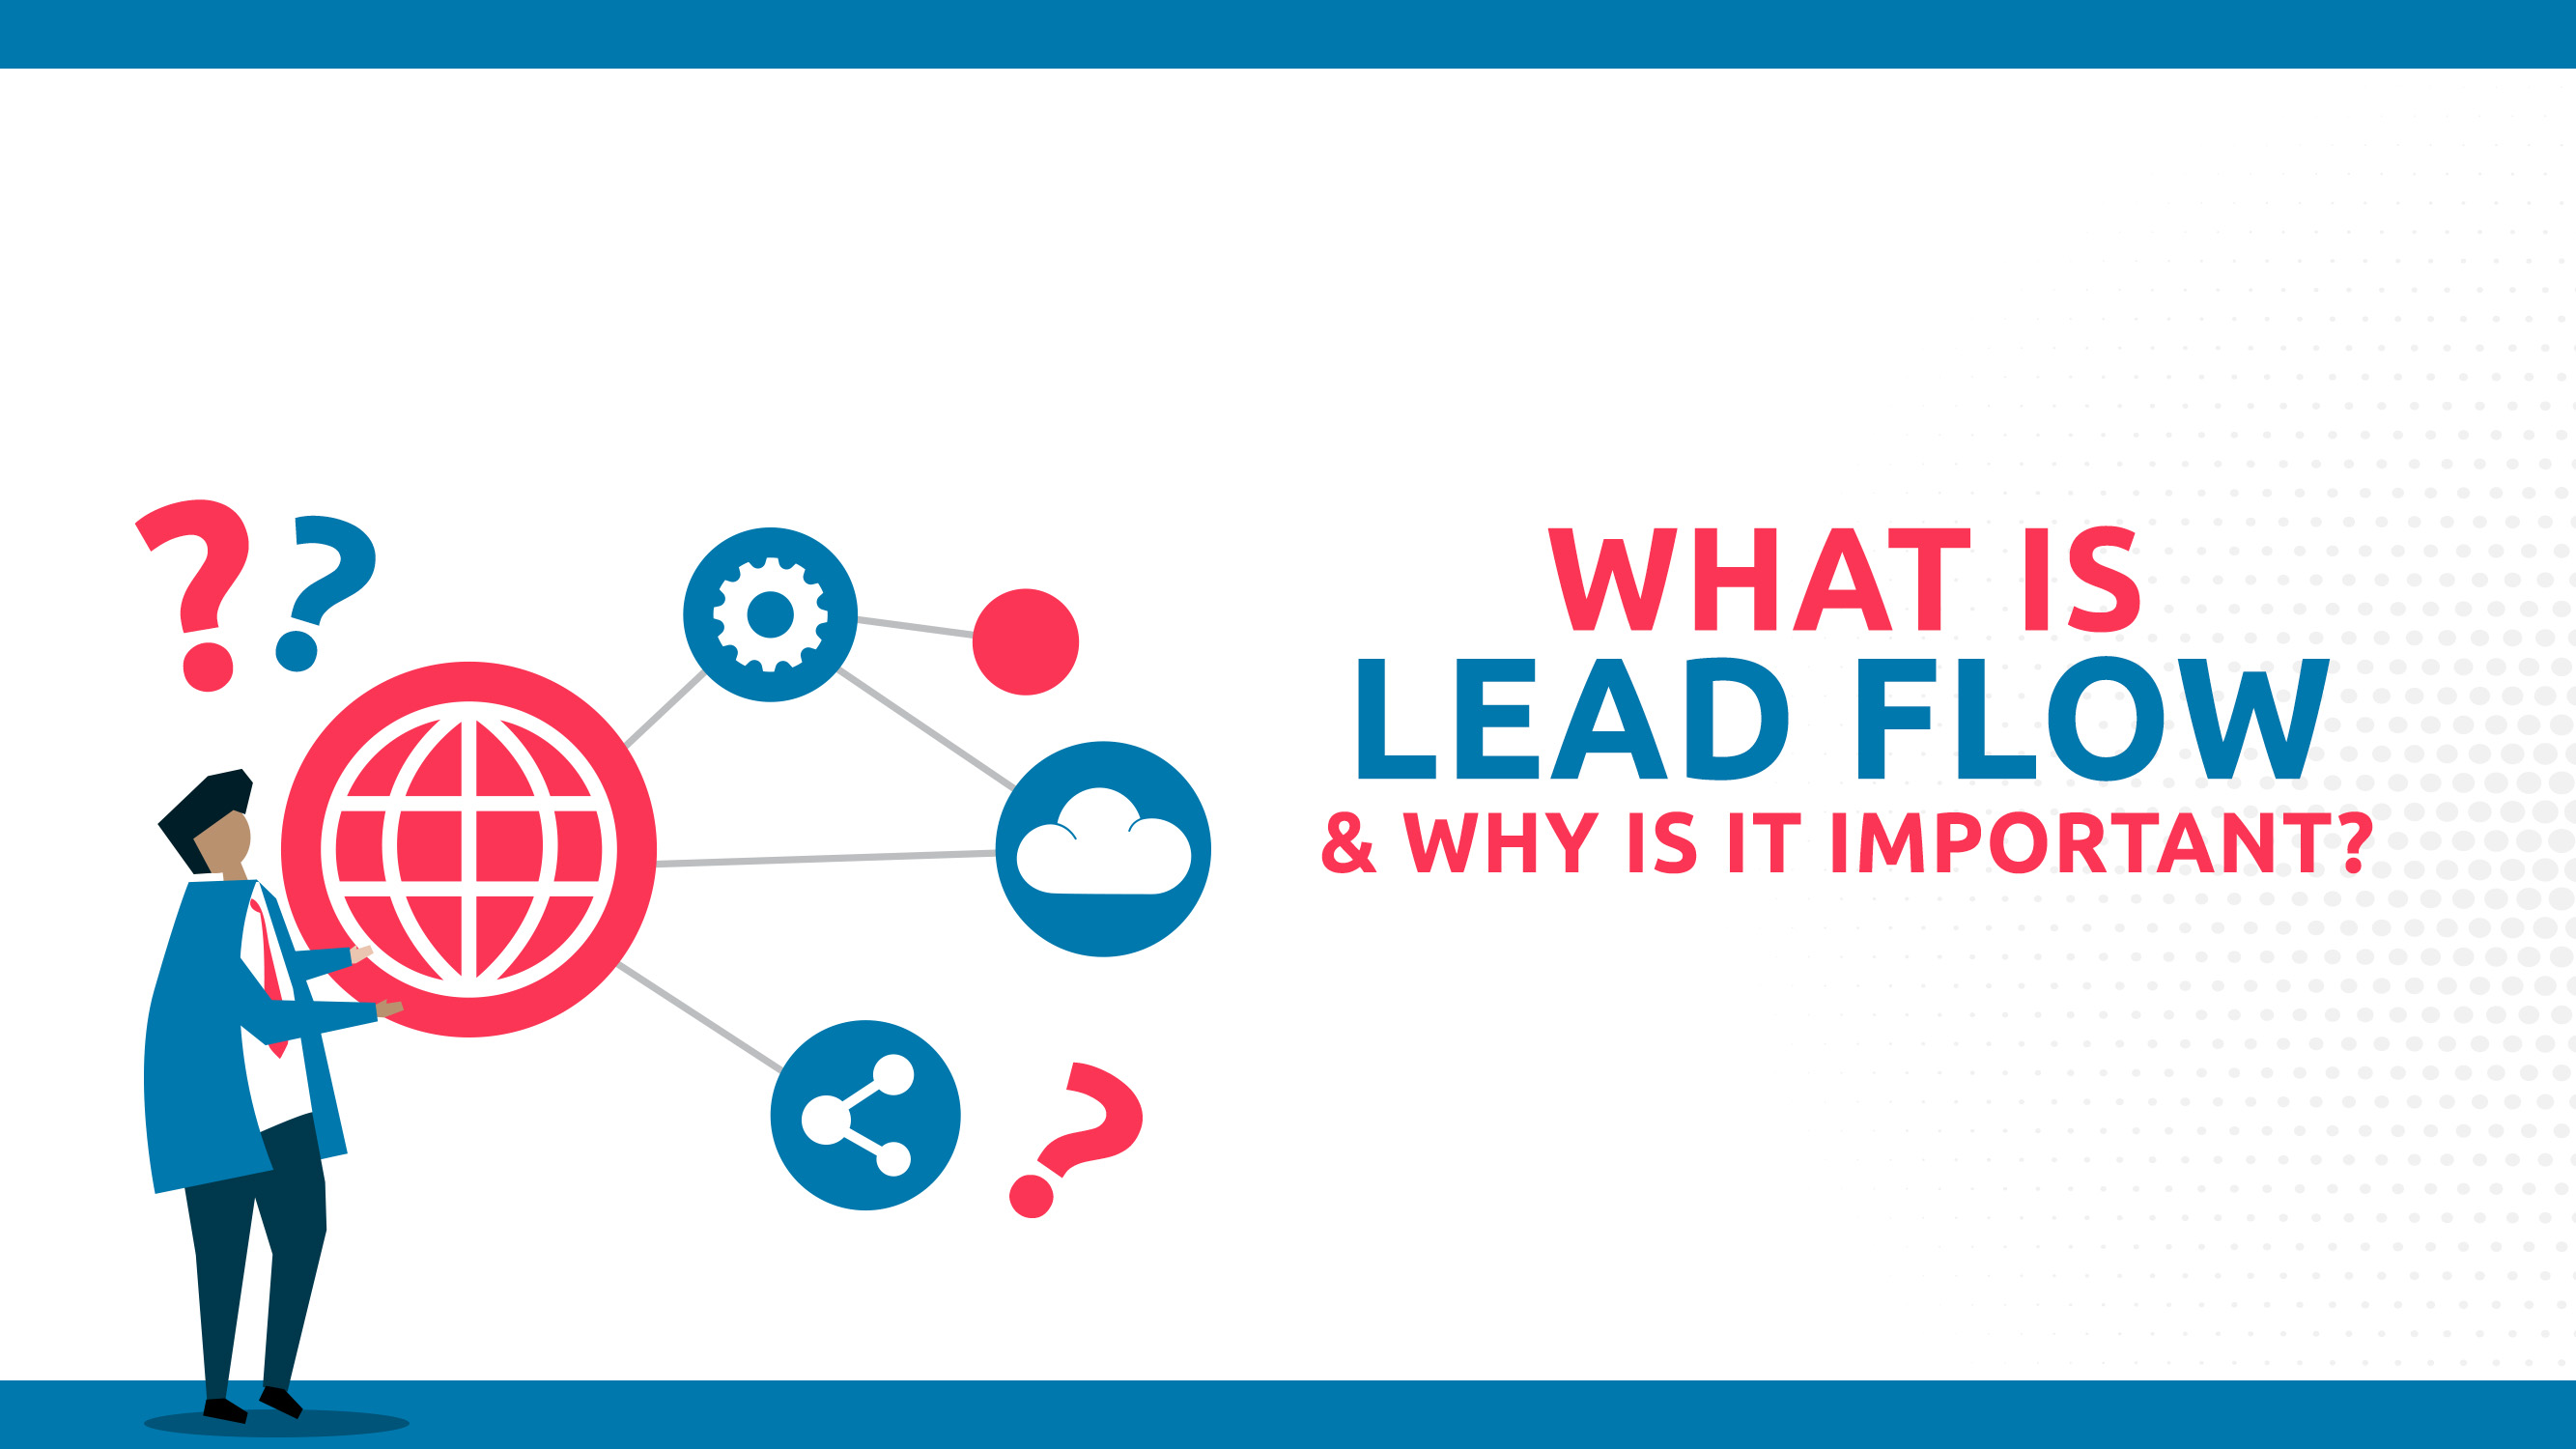 What Is Lead Flow And Why Is It Important?